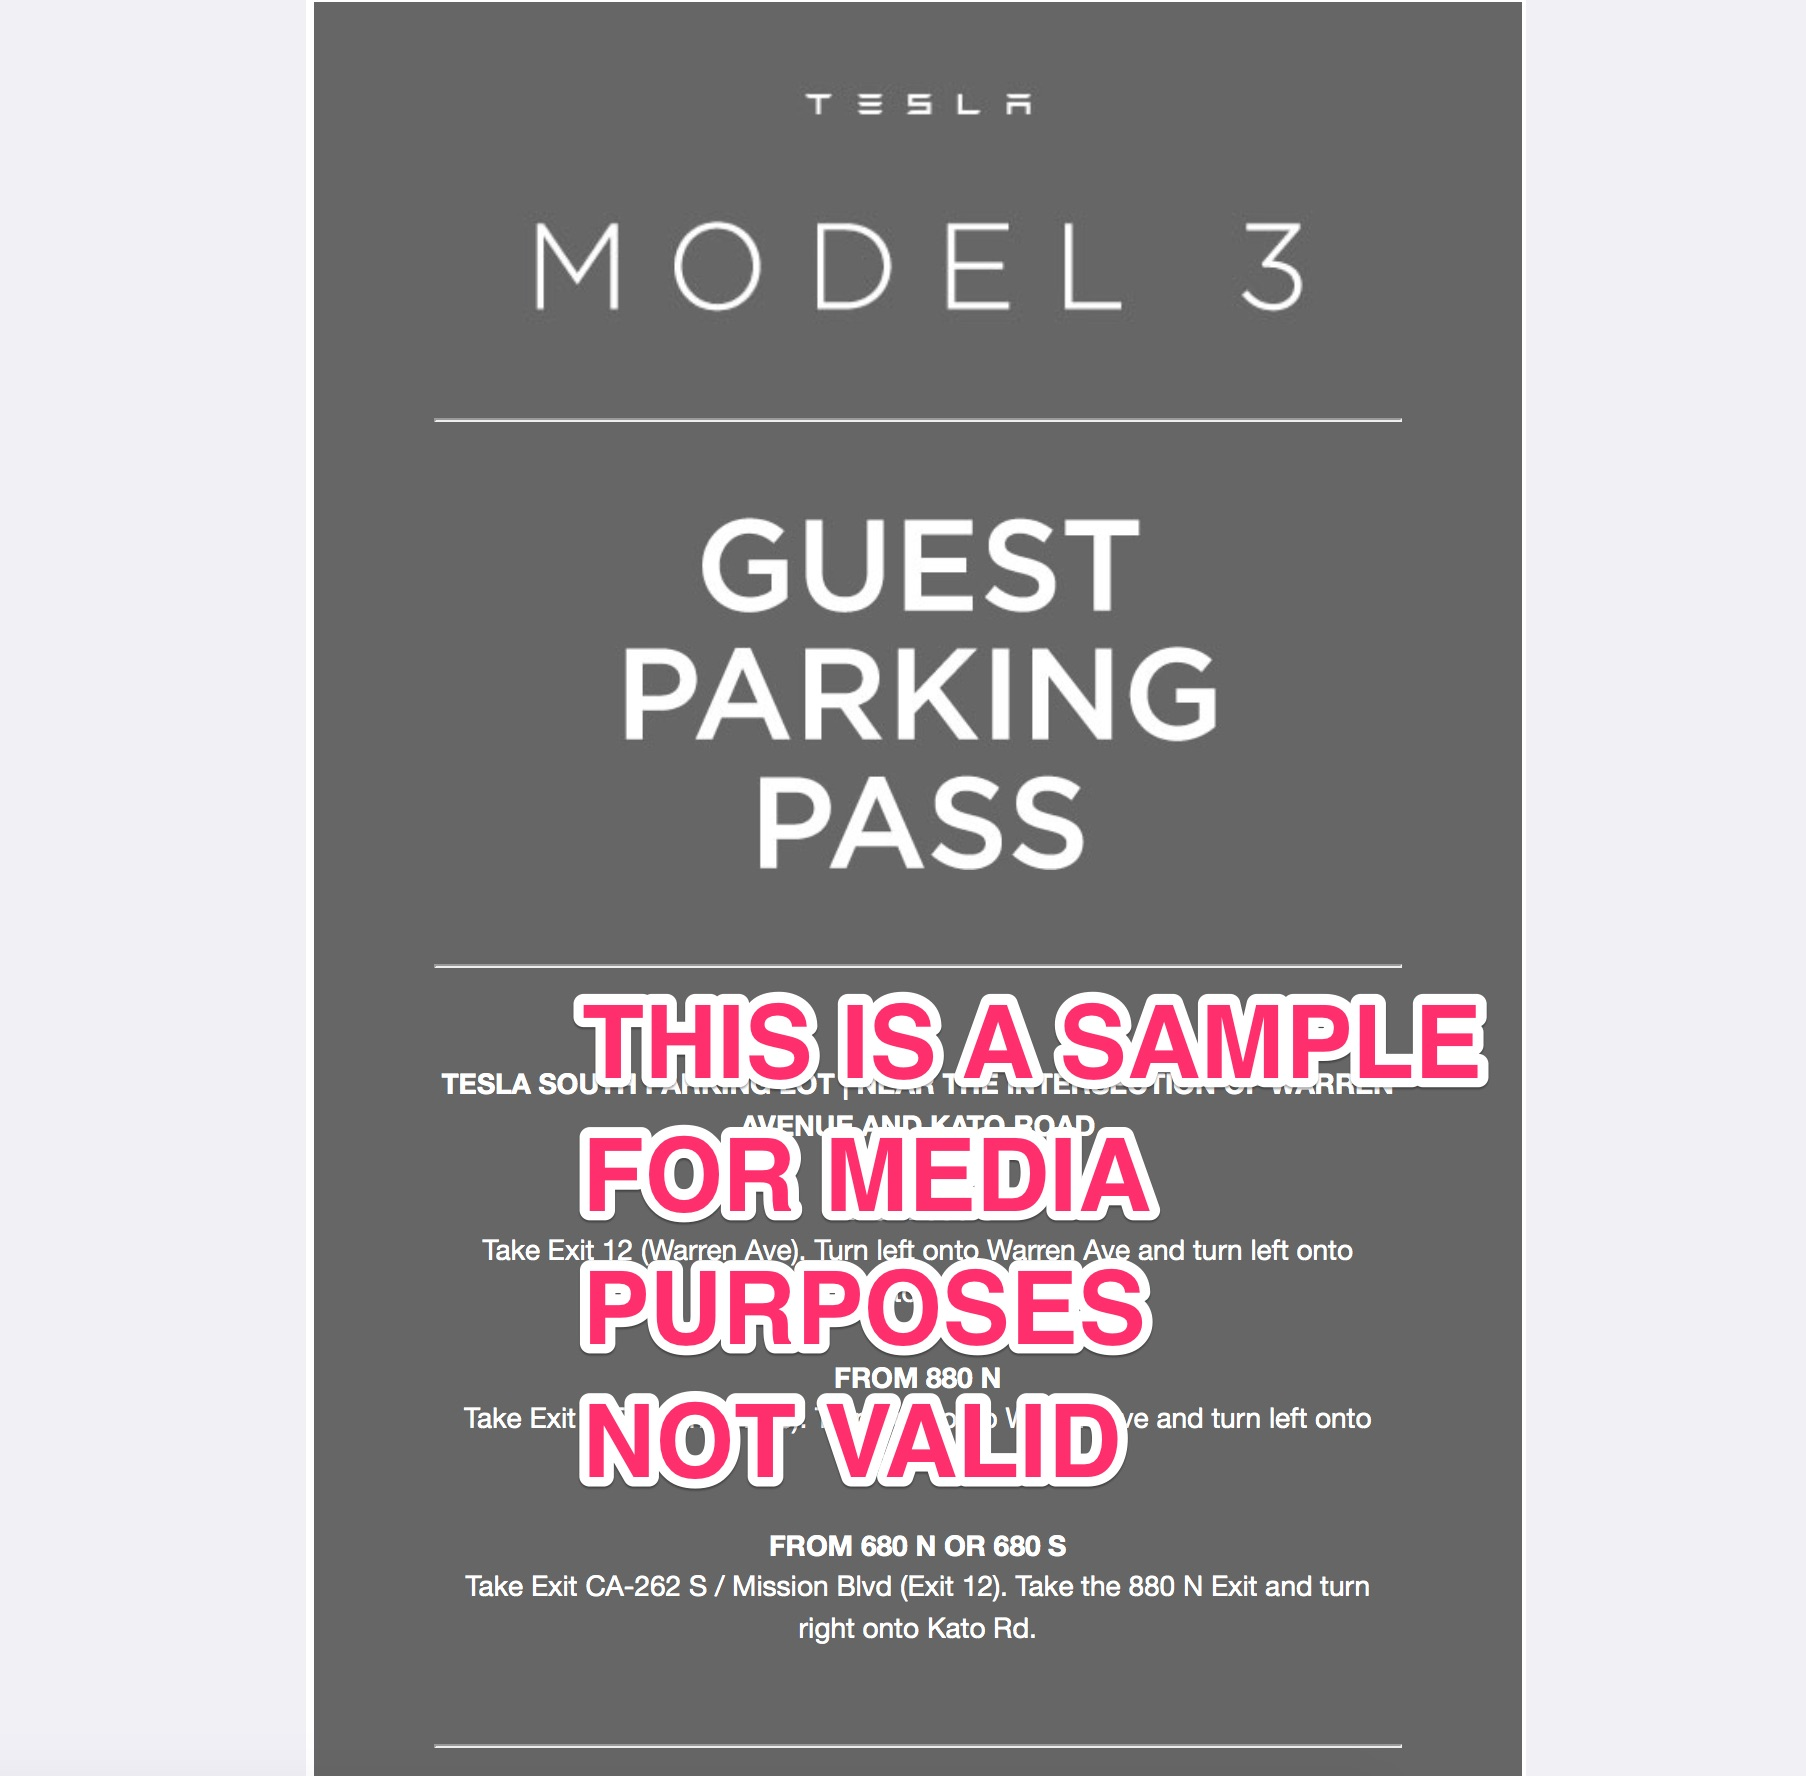 tesla-model-3-delivery-event-guest-parking-pass